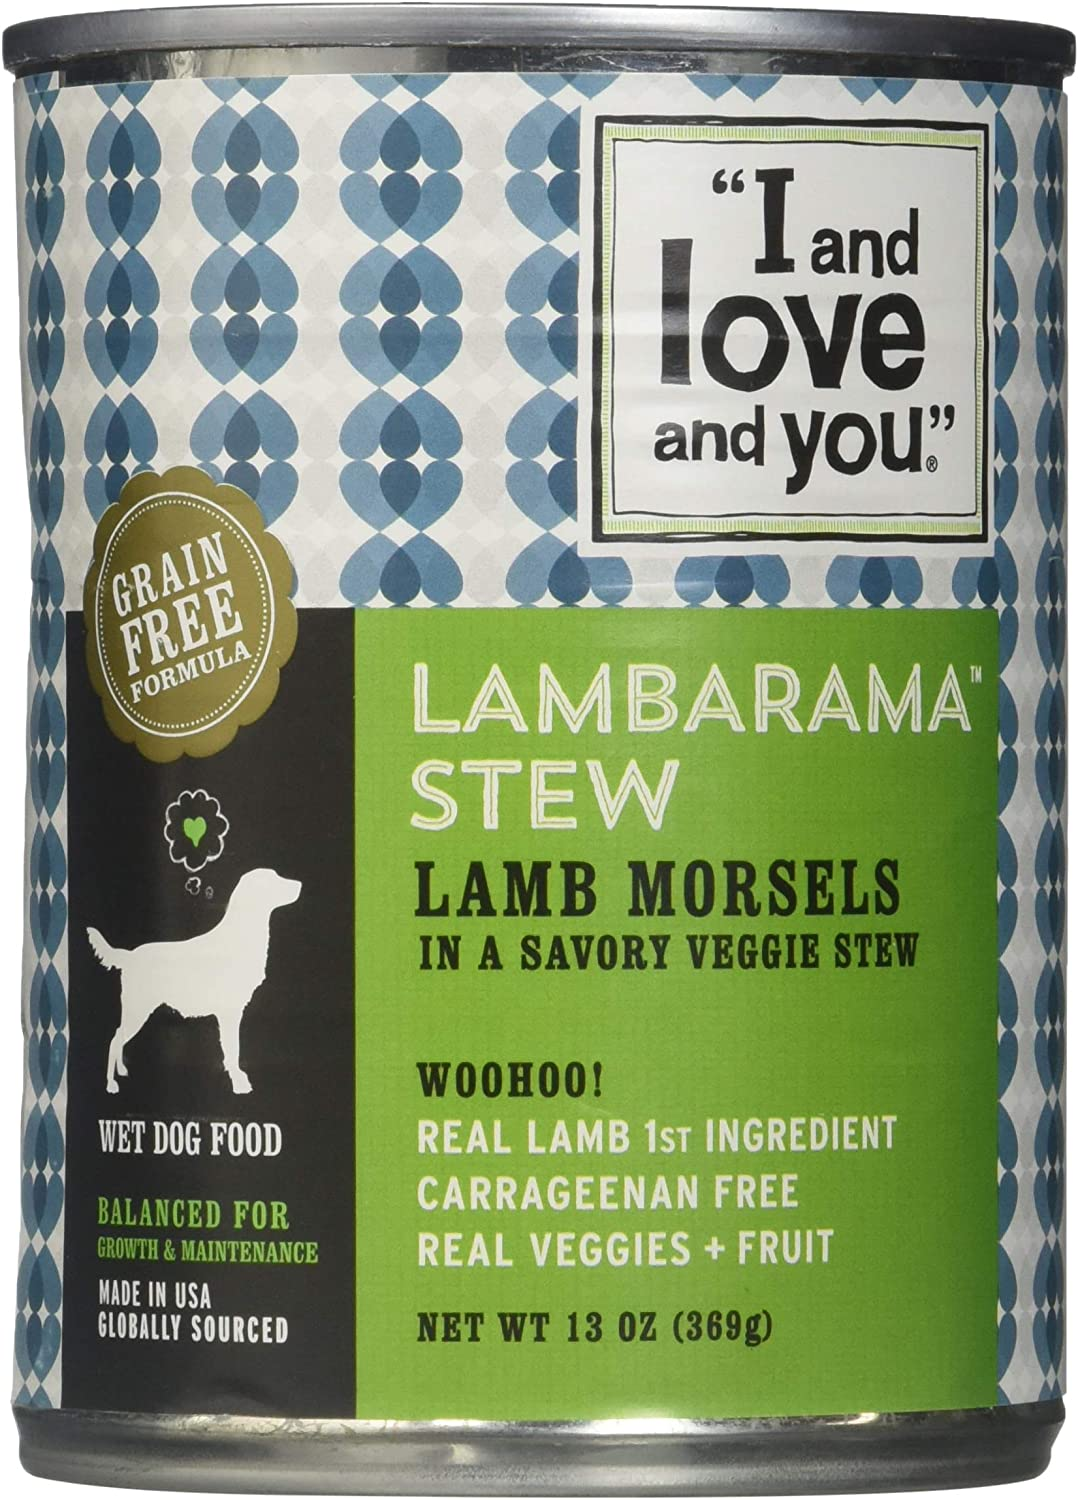 I AND LOVE AND YOU Lamb Stew Canned Dog Food, 13 OZ